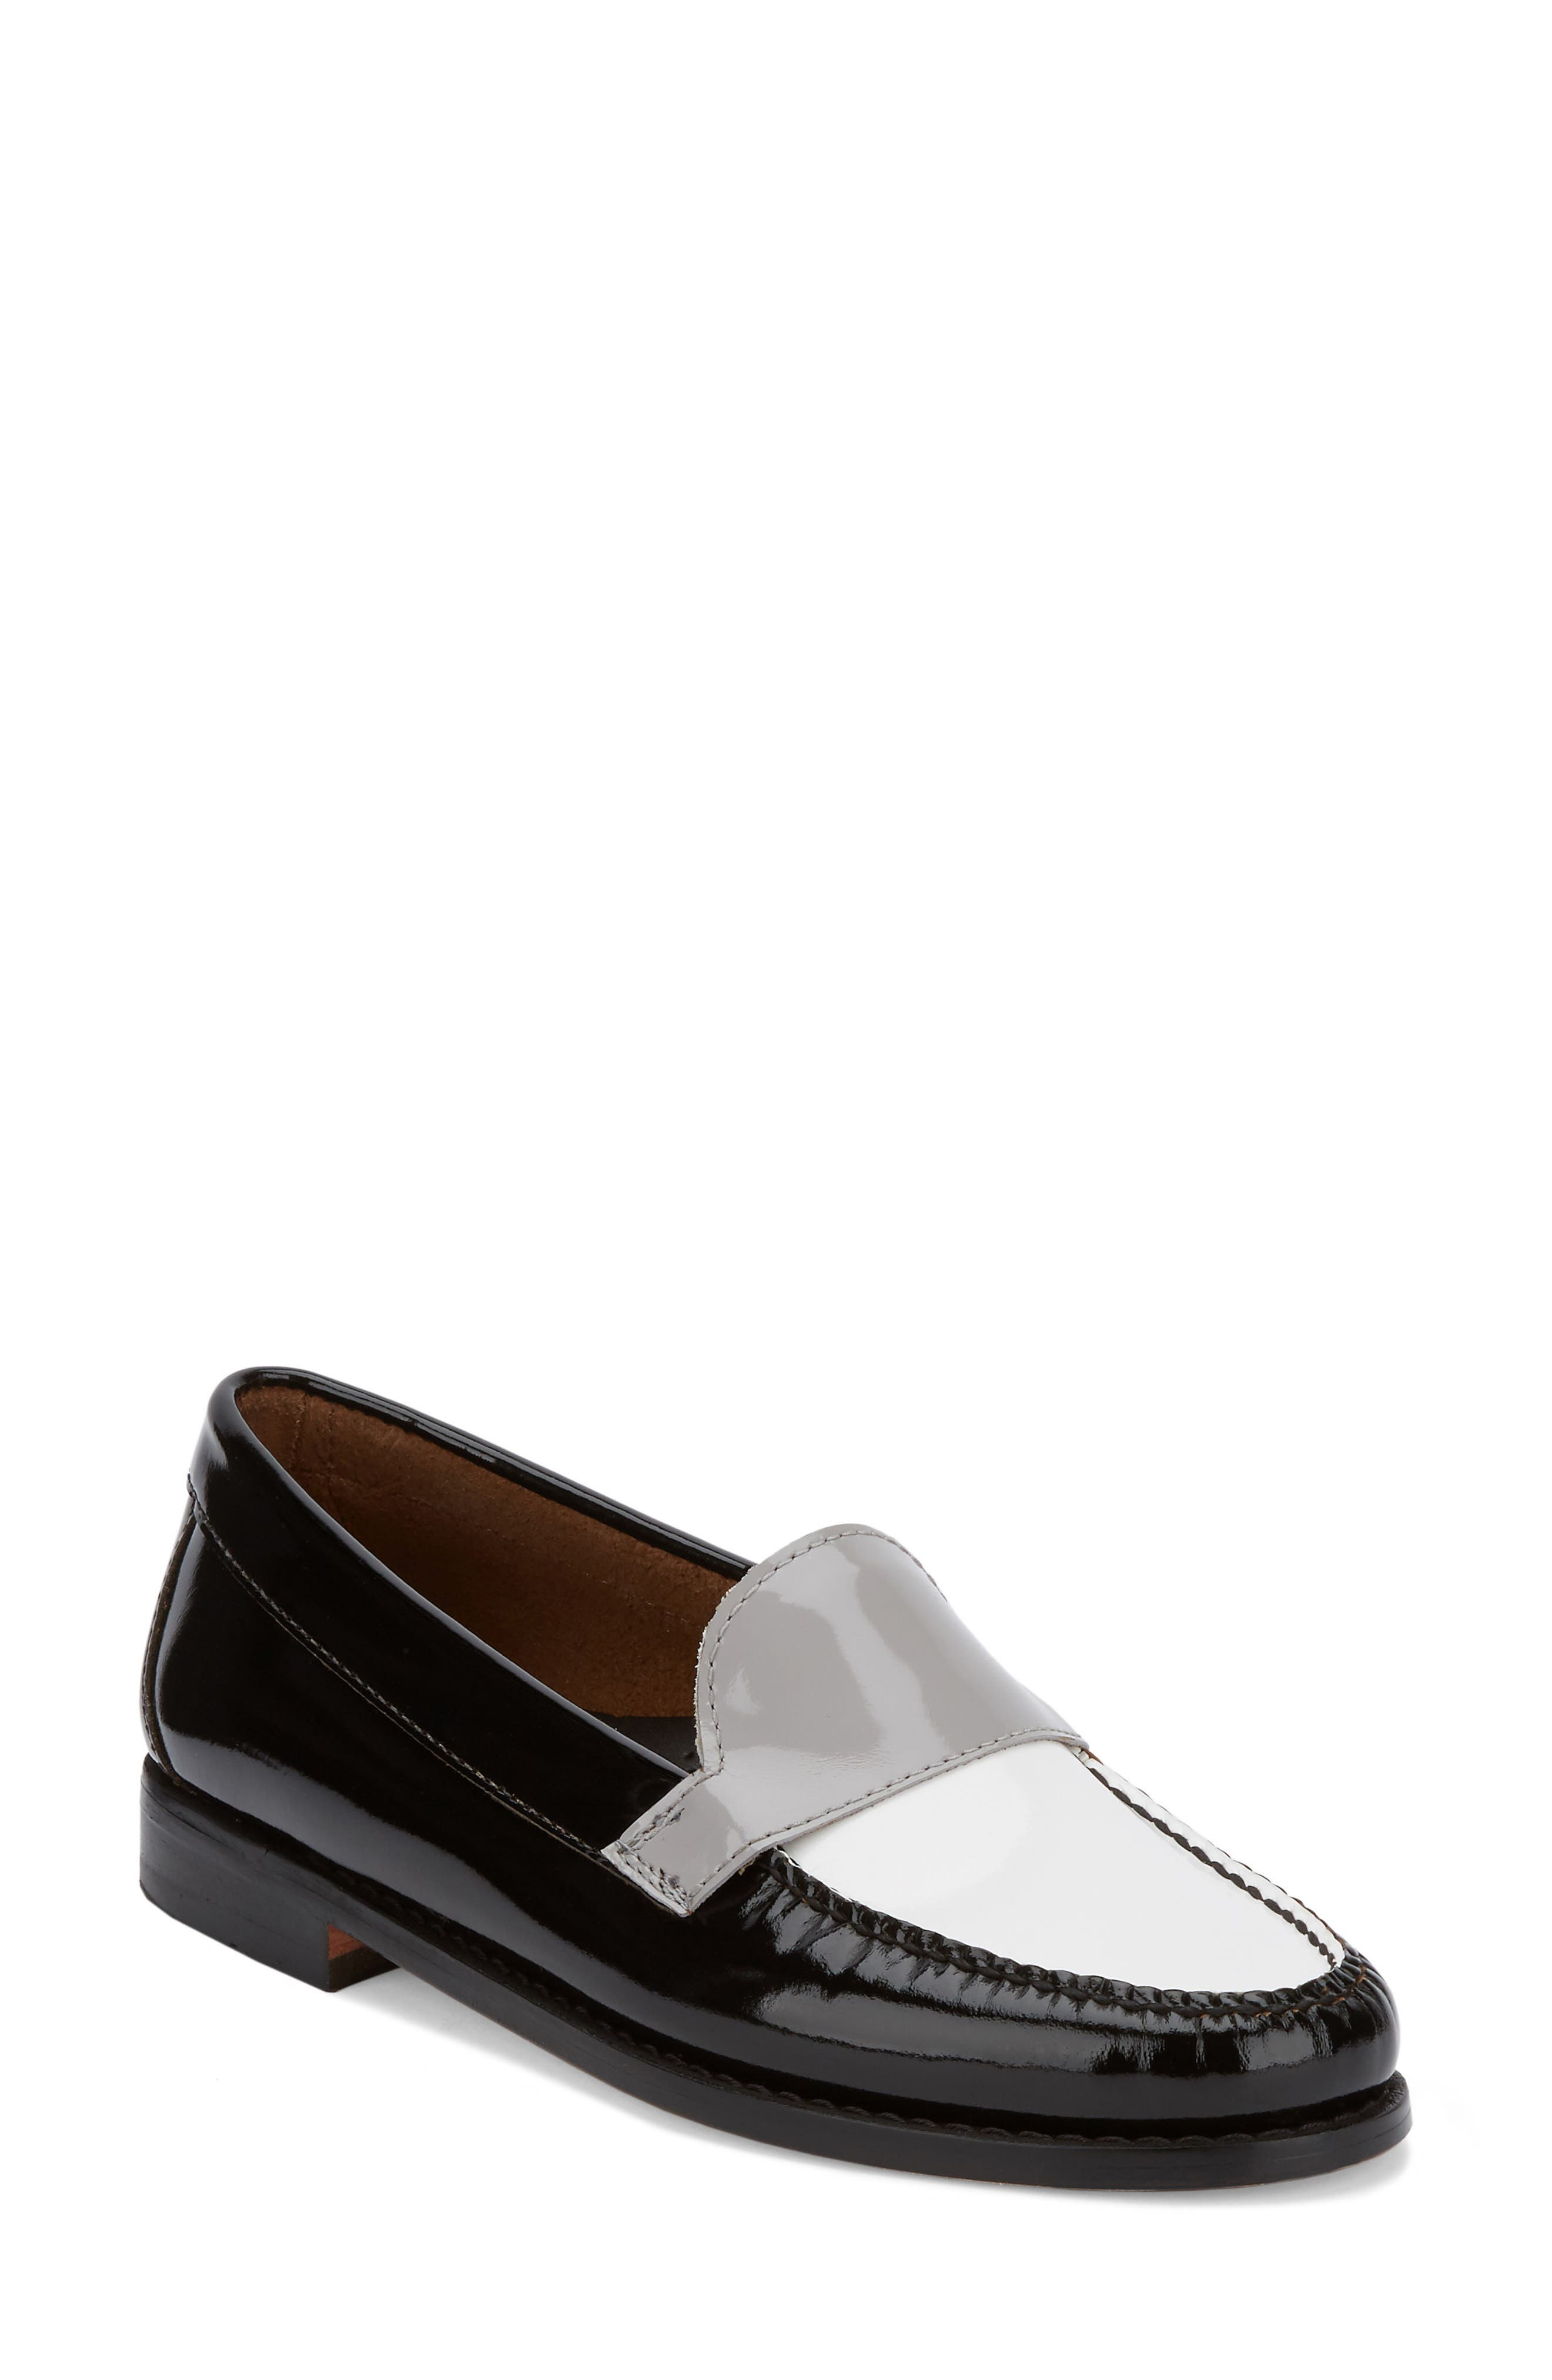 Wylie Loafer,                         Main,                         color, Black/ White/ Grey Patent